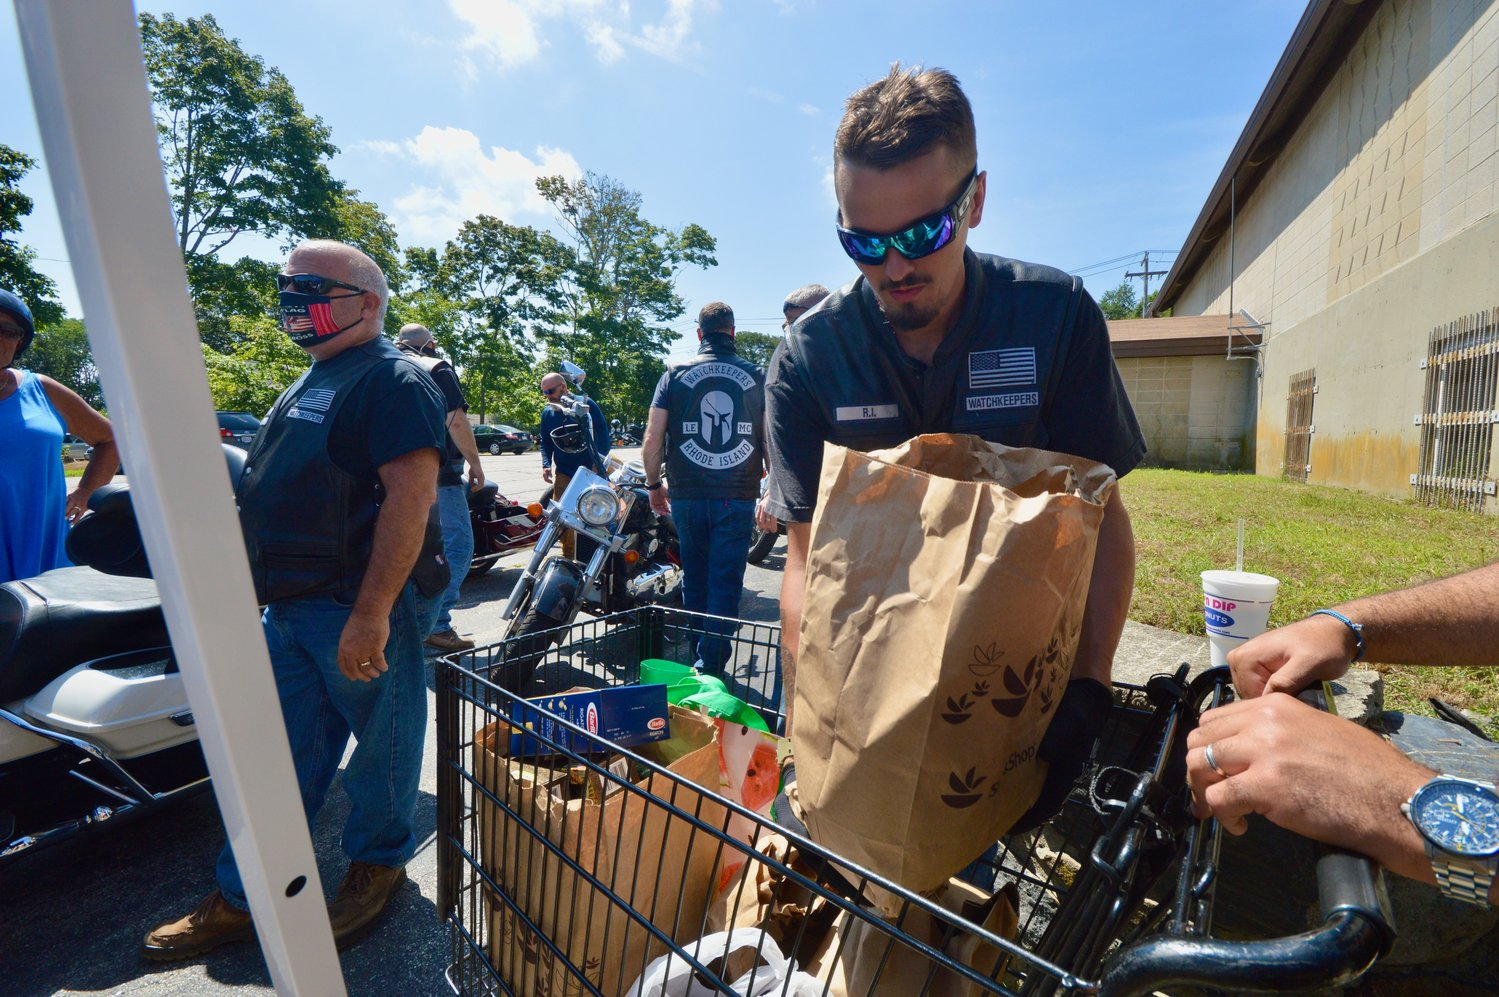 Evan Luther, a member of the Watchkeepers Rhode Island motorcycle club, loads donations from the club into a shopping basket during a food drive Sunday at the Portsmouth Emergency Food Bank on Sprague Street.